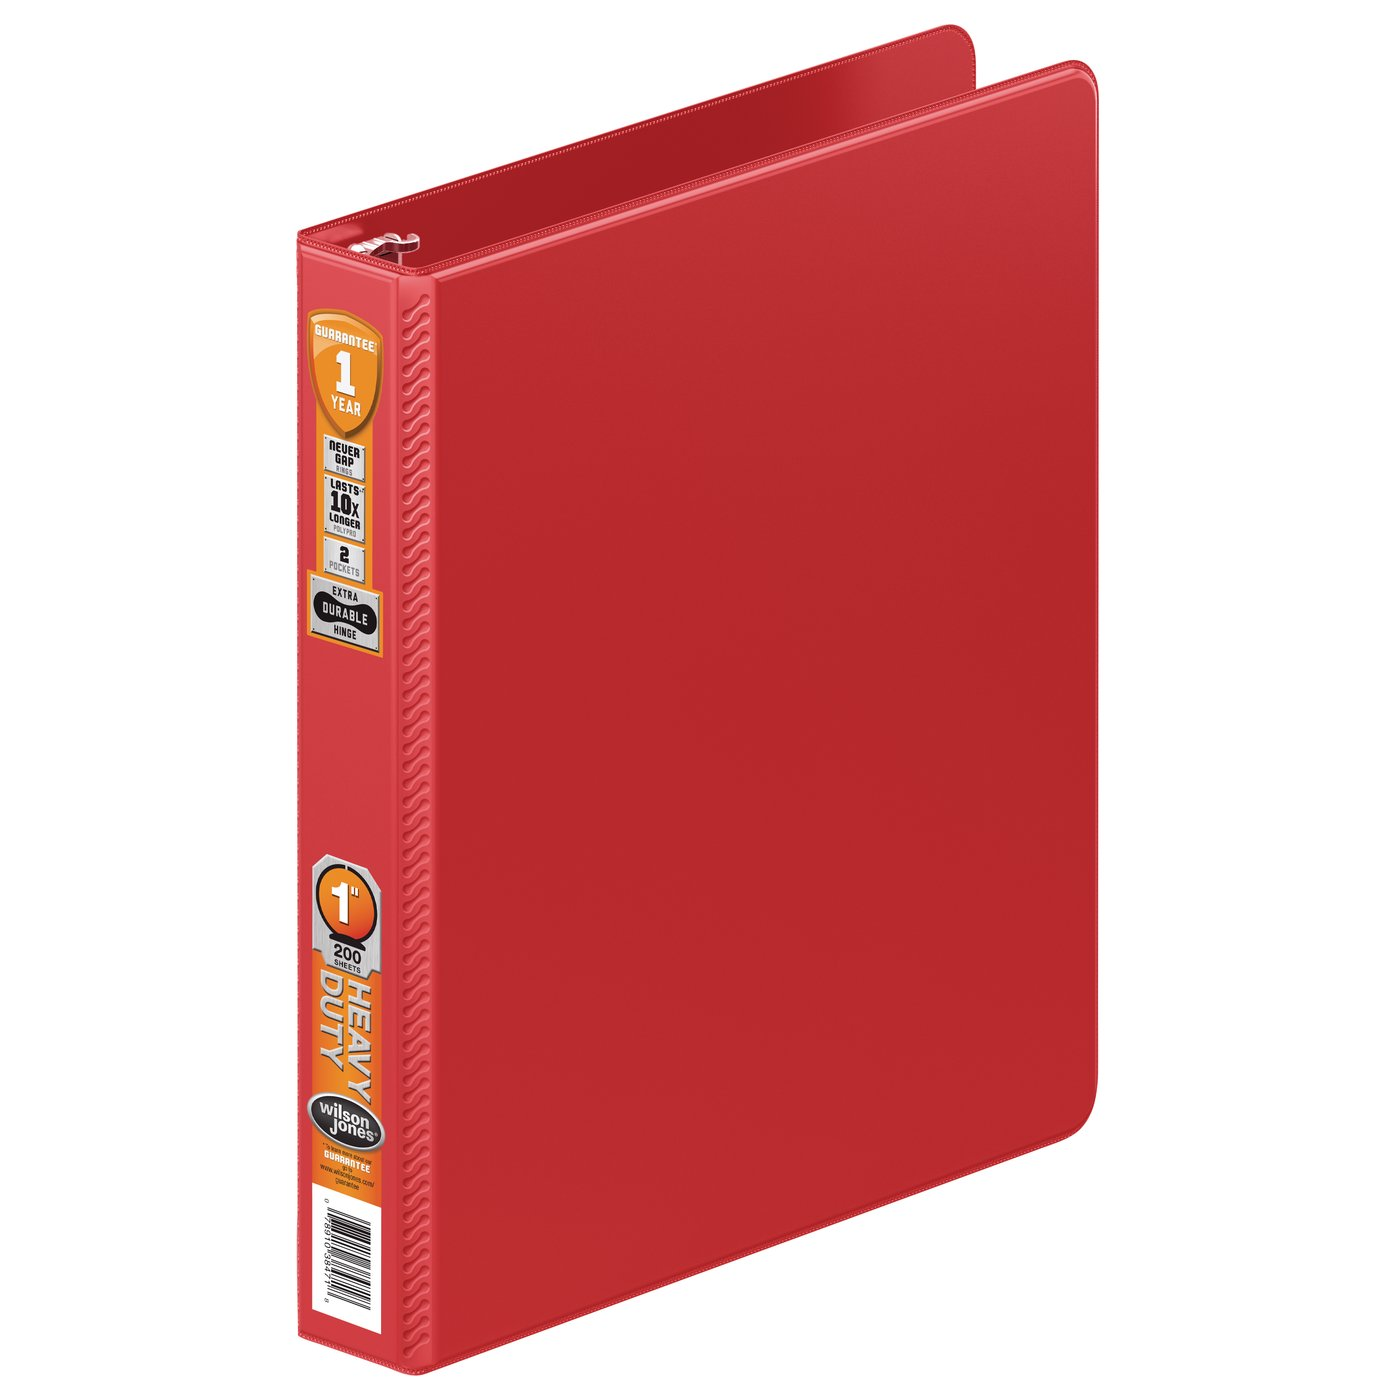 Wilson Jones Binders Heavy Duty Binders Wilson Jones